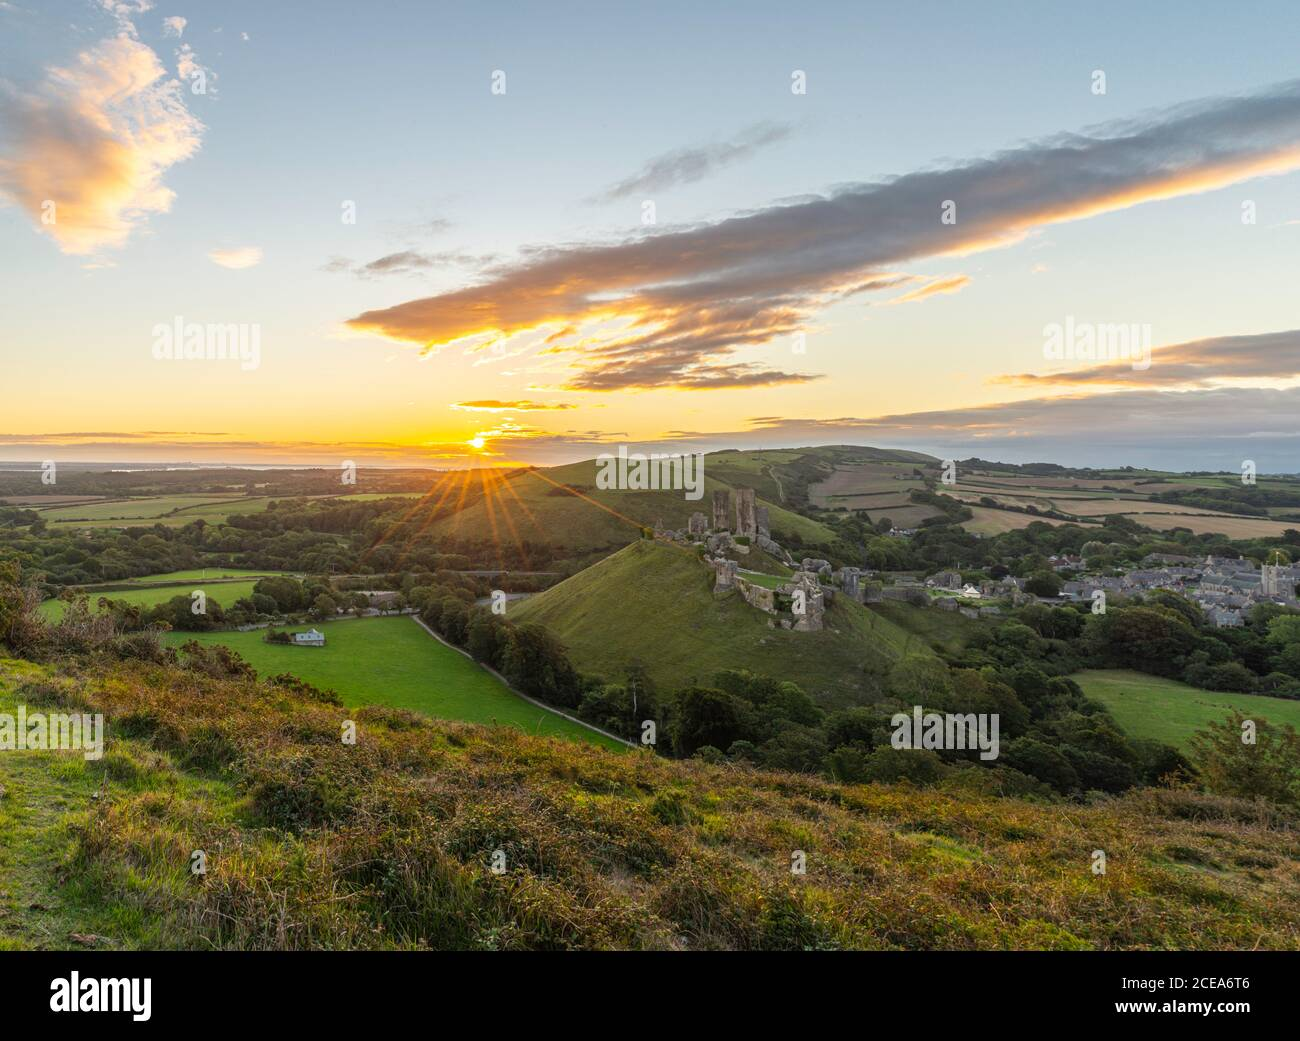 Sunrise with sunburst over the Dorset Countryside with Corfe castle and hills glowing from the morning sun. Stock Photo